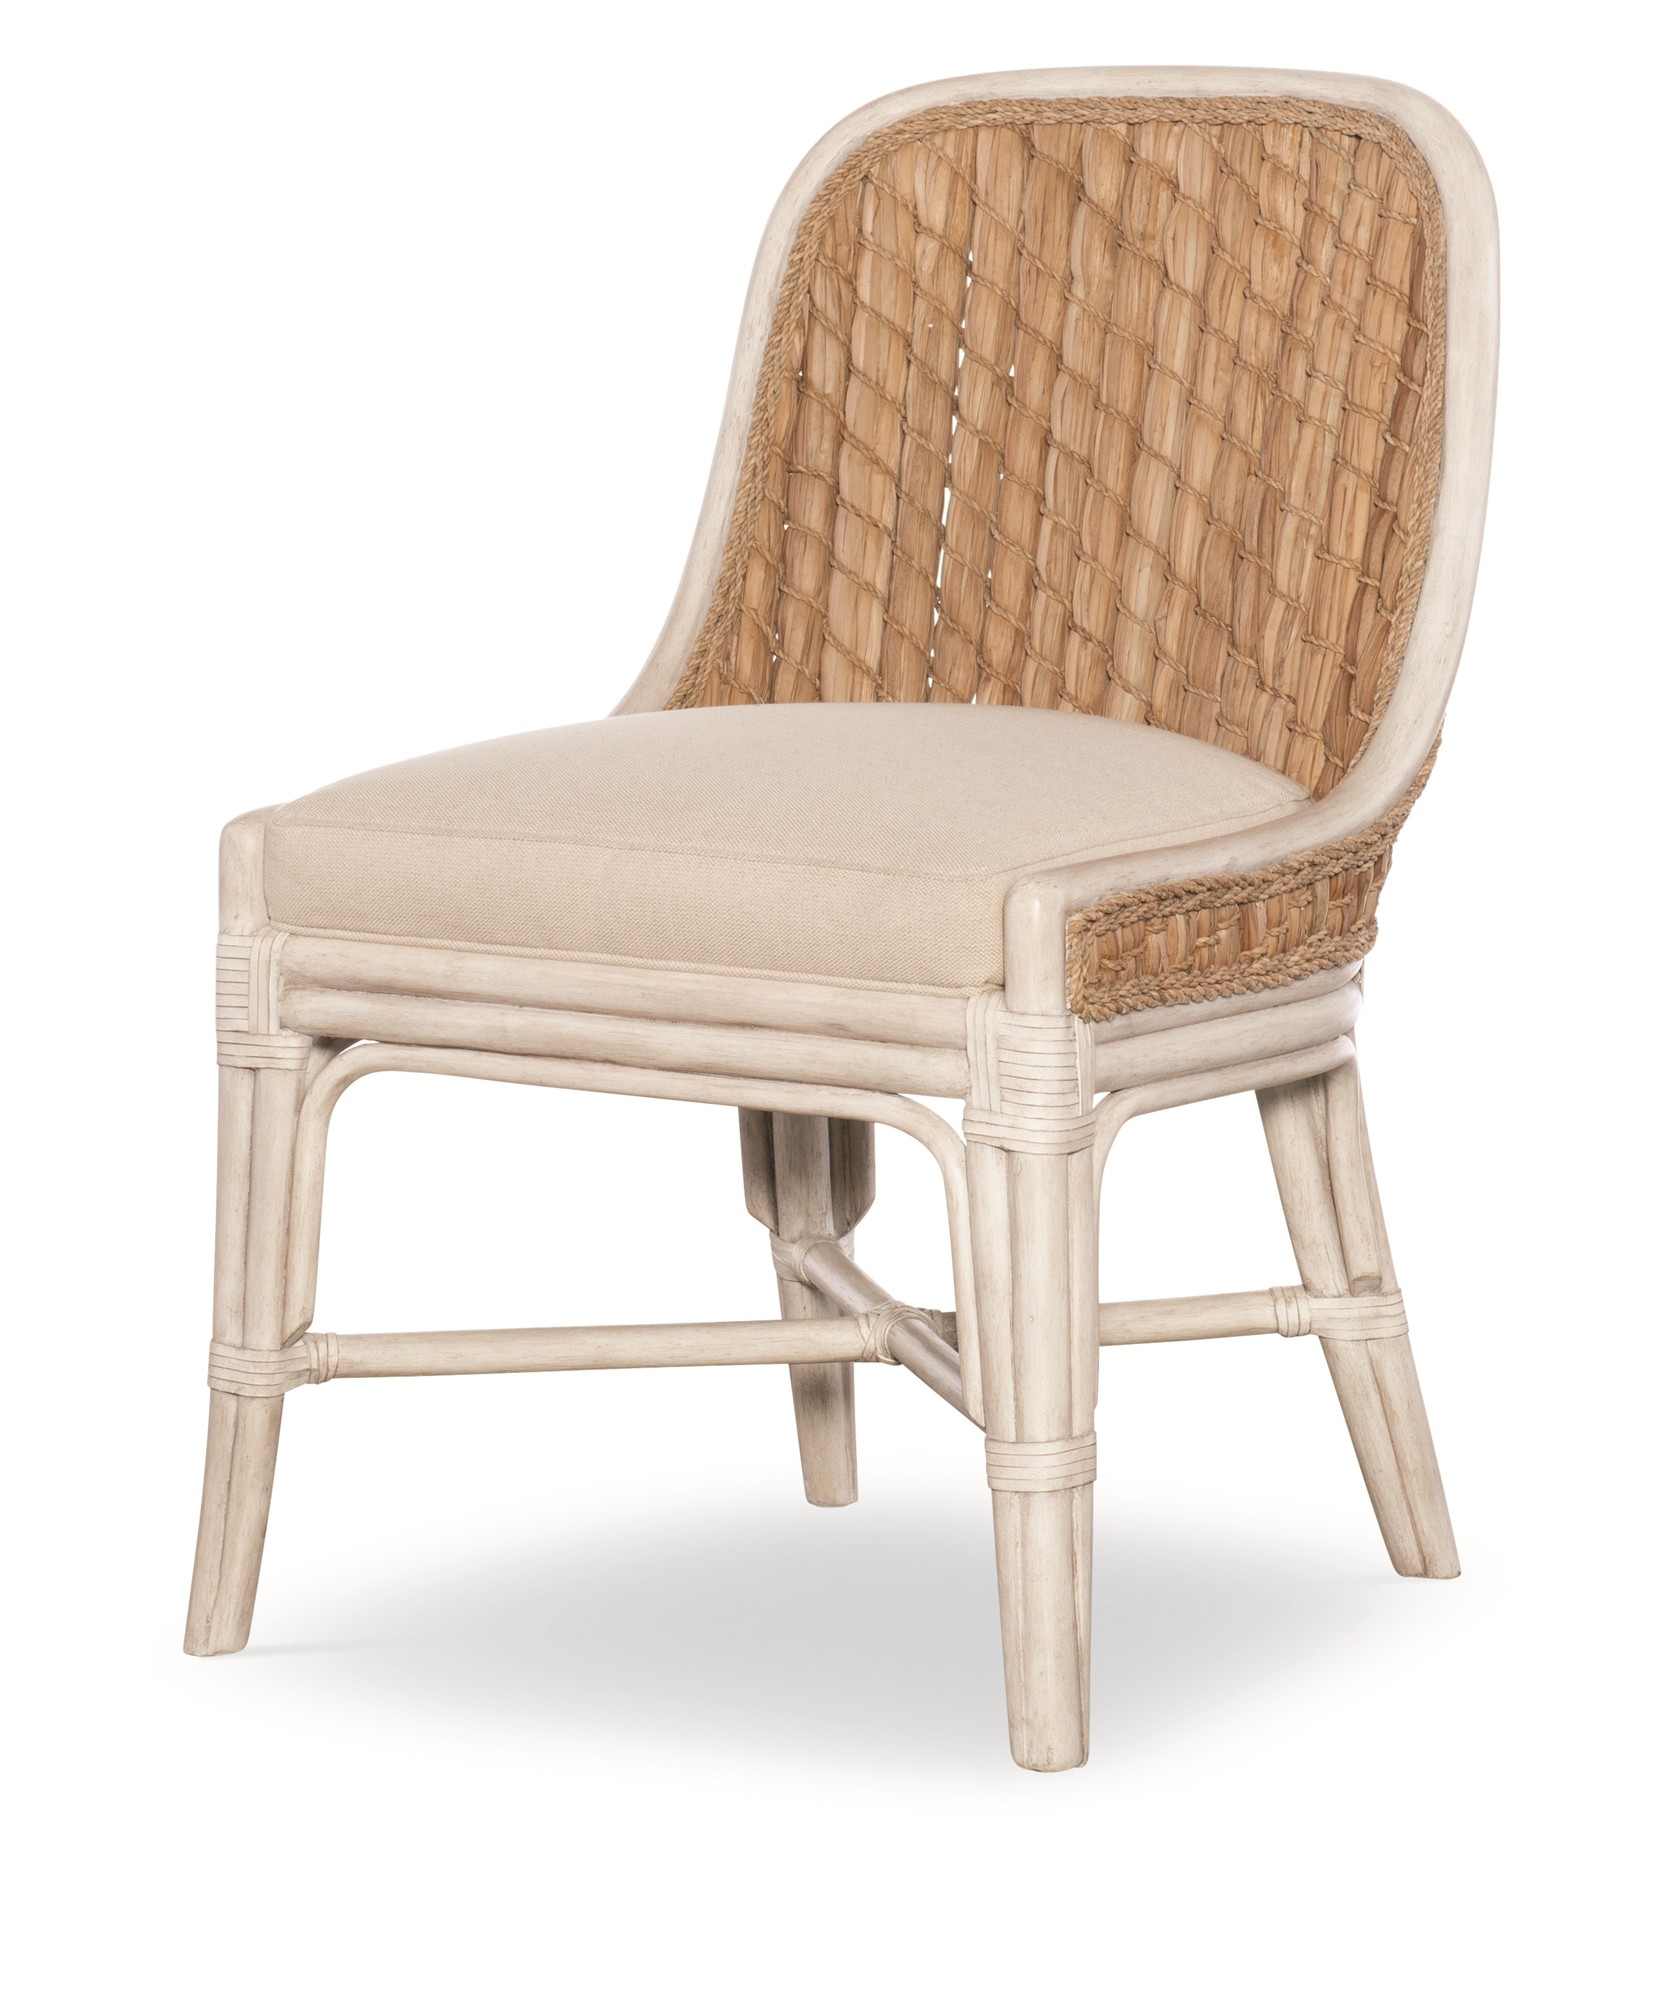 Amelia Side Chair - Peninsula/Flax